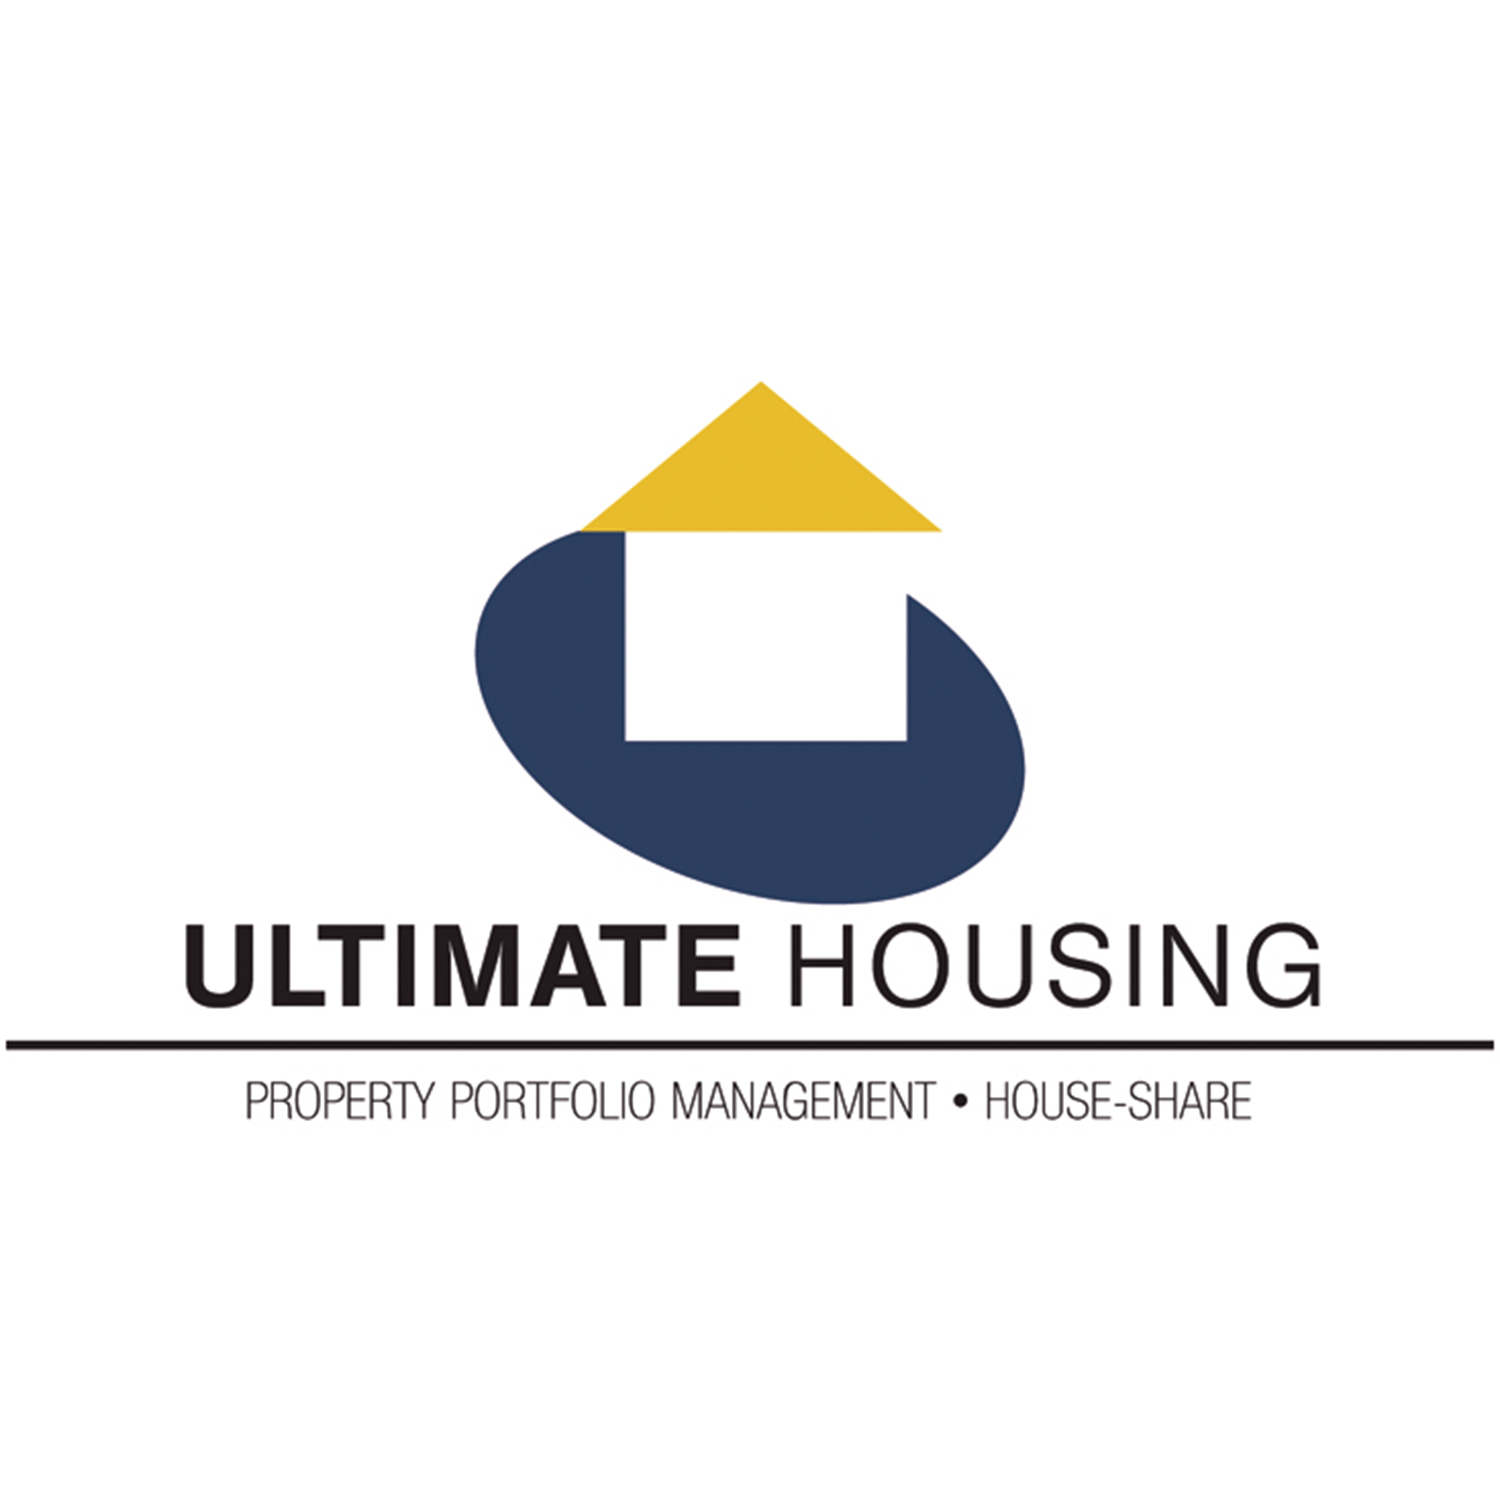 ULTIMATE HOUSING